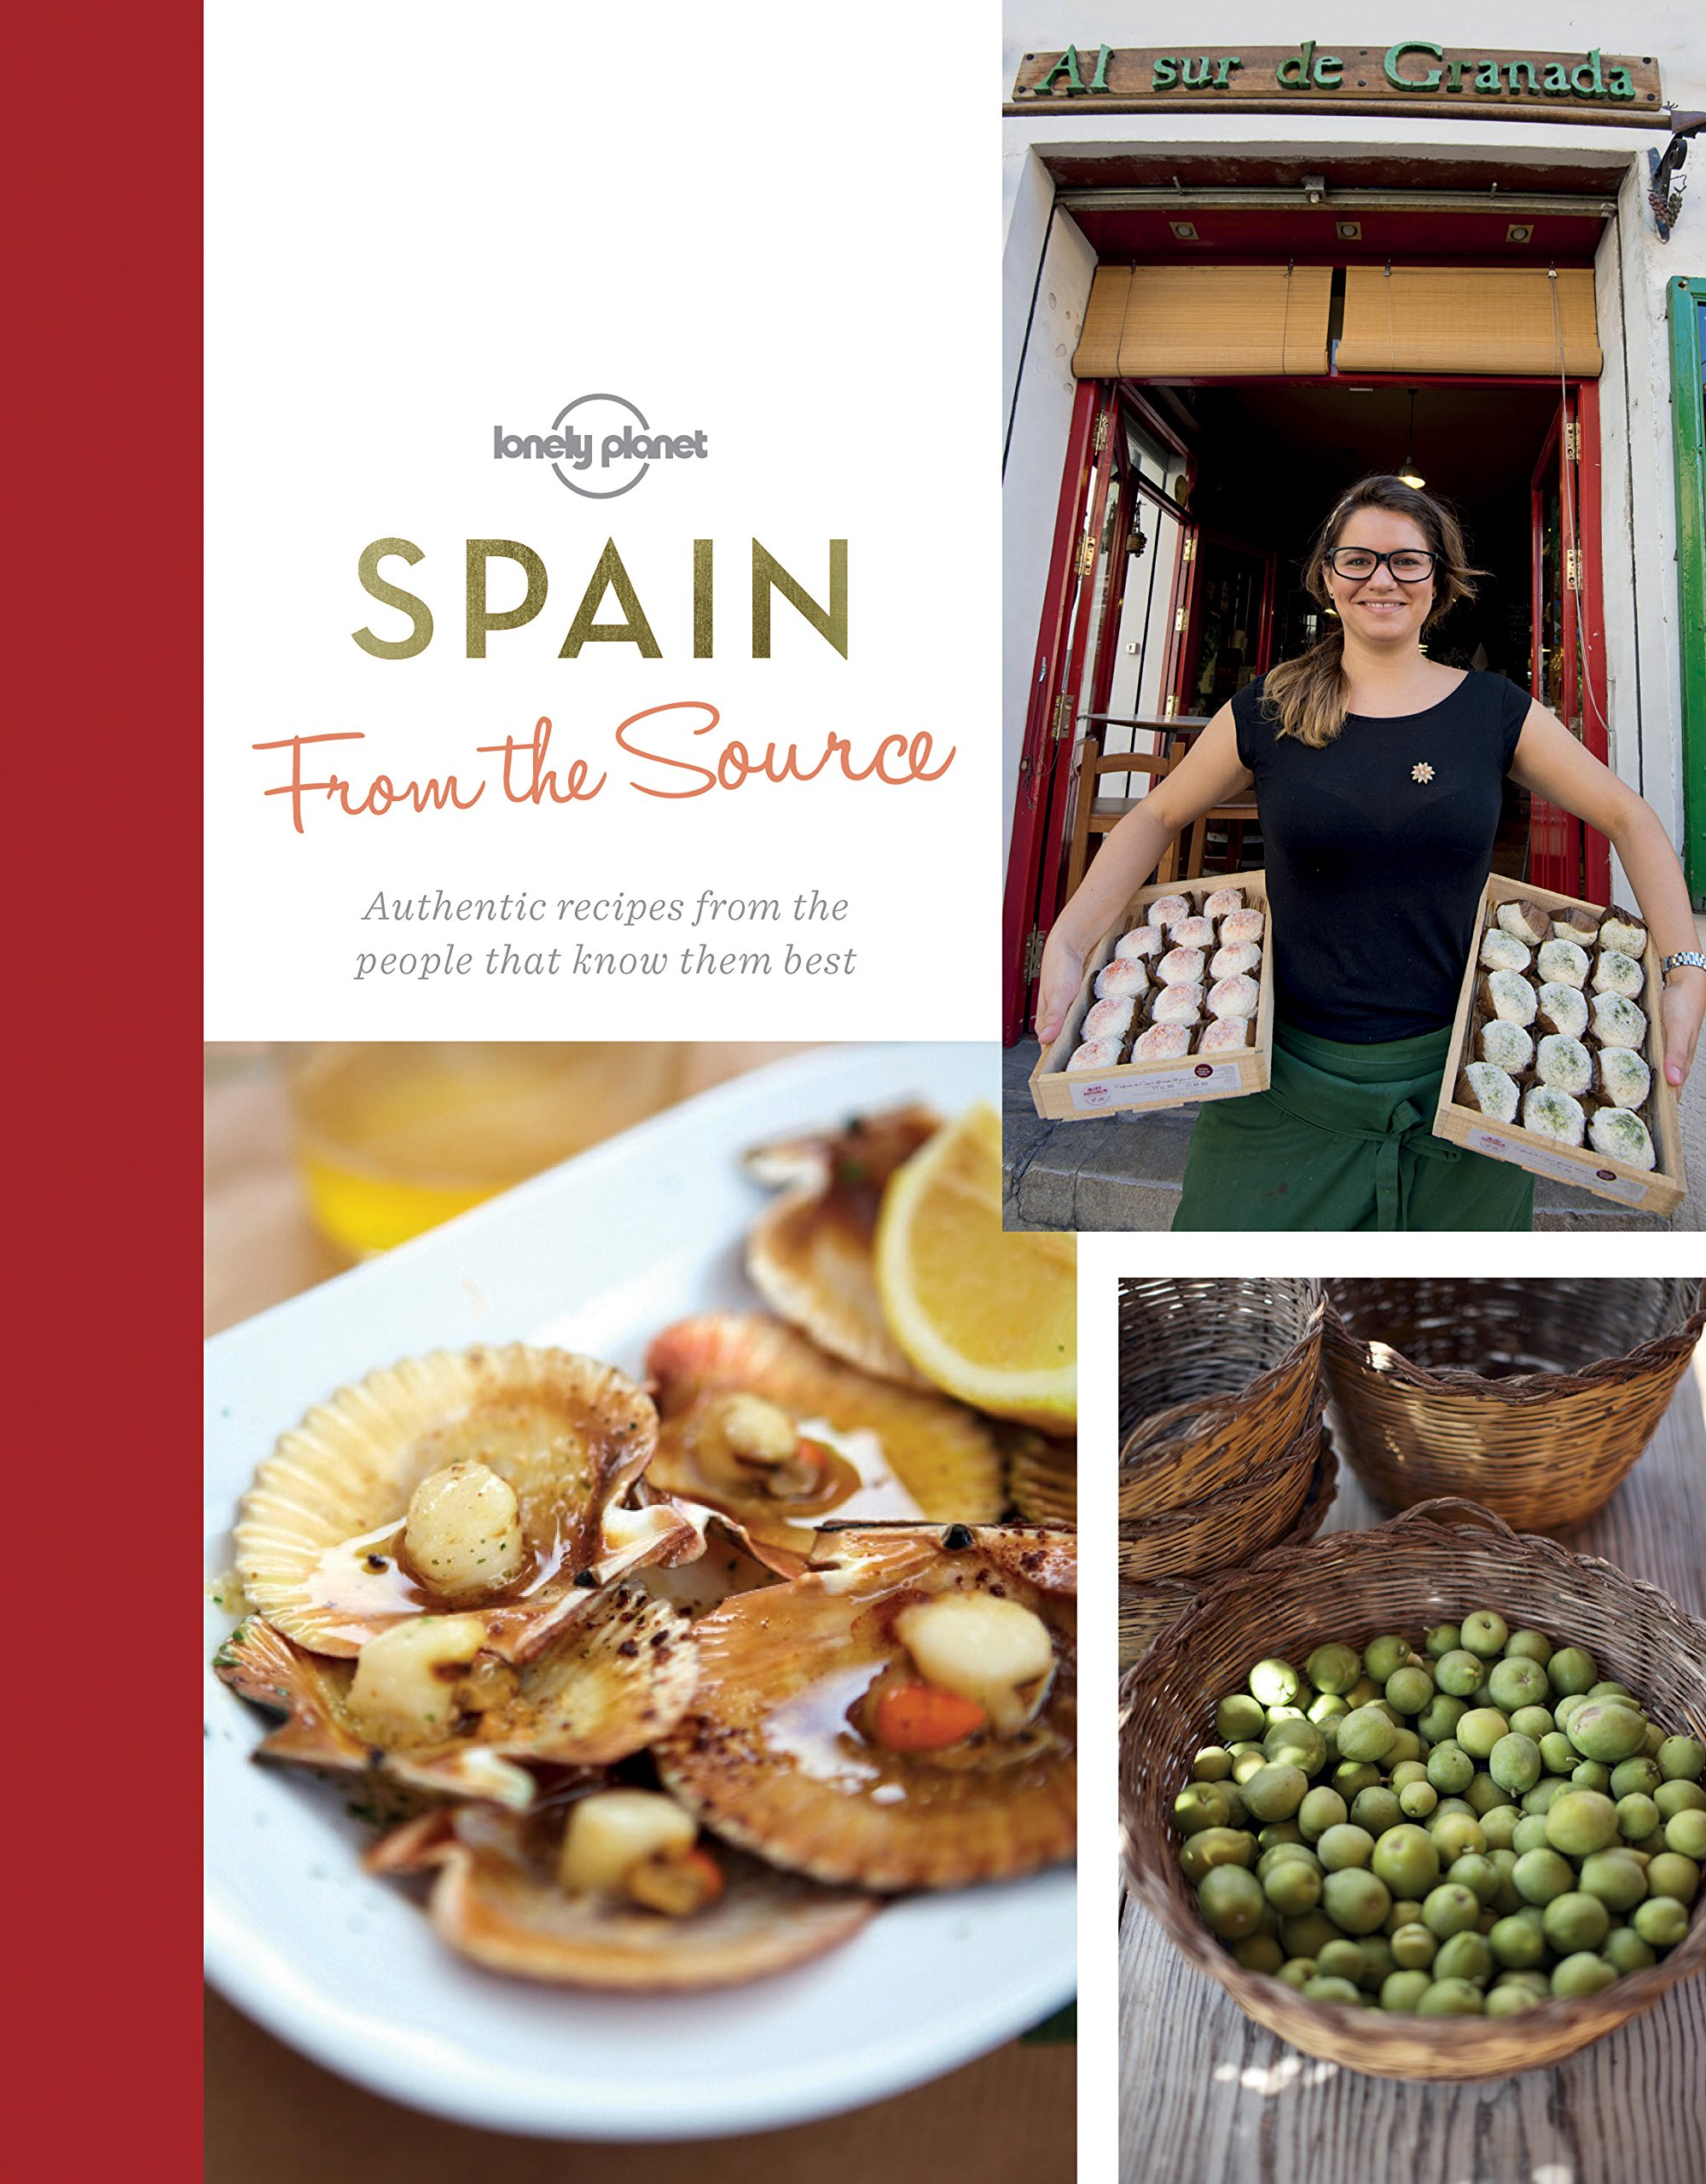 From the Source - Spain: Spain's Most Authentic Recipes From the People That Know Them Best (Lonely Planet) PDF